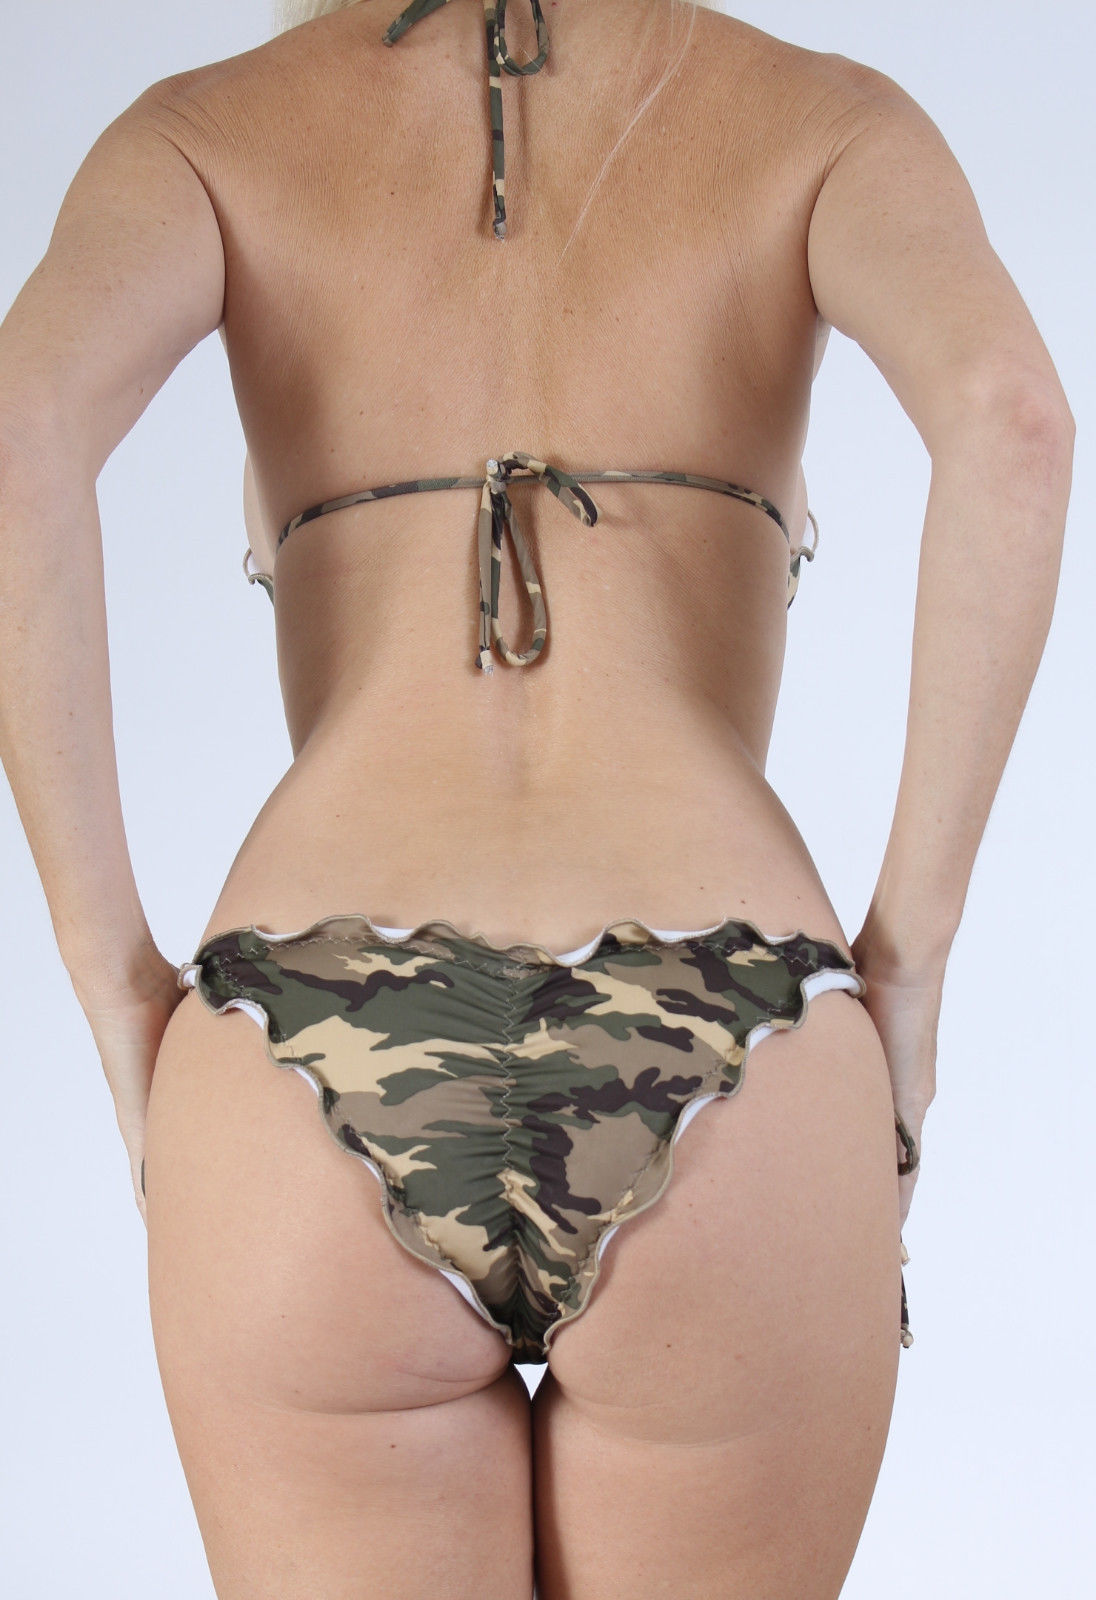 Women's Camo Swimsuits. invalid category id. Women's Camo Swimsuits. Showing 40 of 46 results that match your query. Search Product Result. Op - Juniors String Bikini Top. Product - Head Liquid Last Camo UV Ray Protection Fashionable Swimsuit, Women's. Product Image. Price $